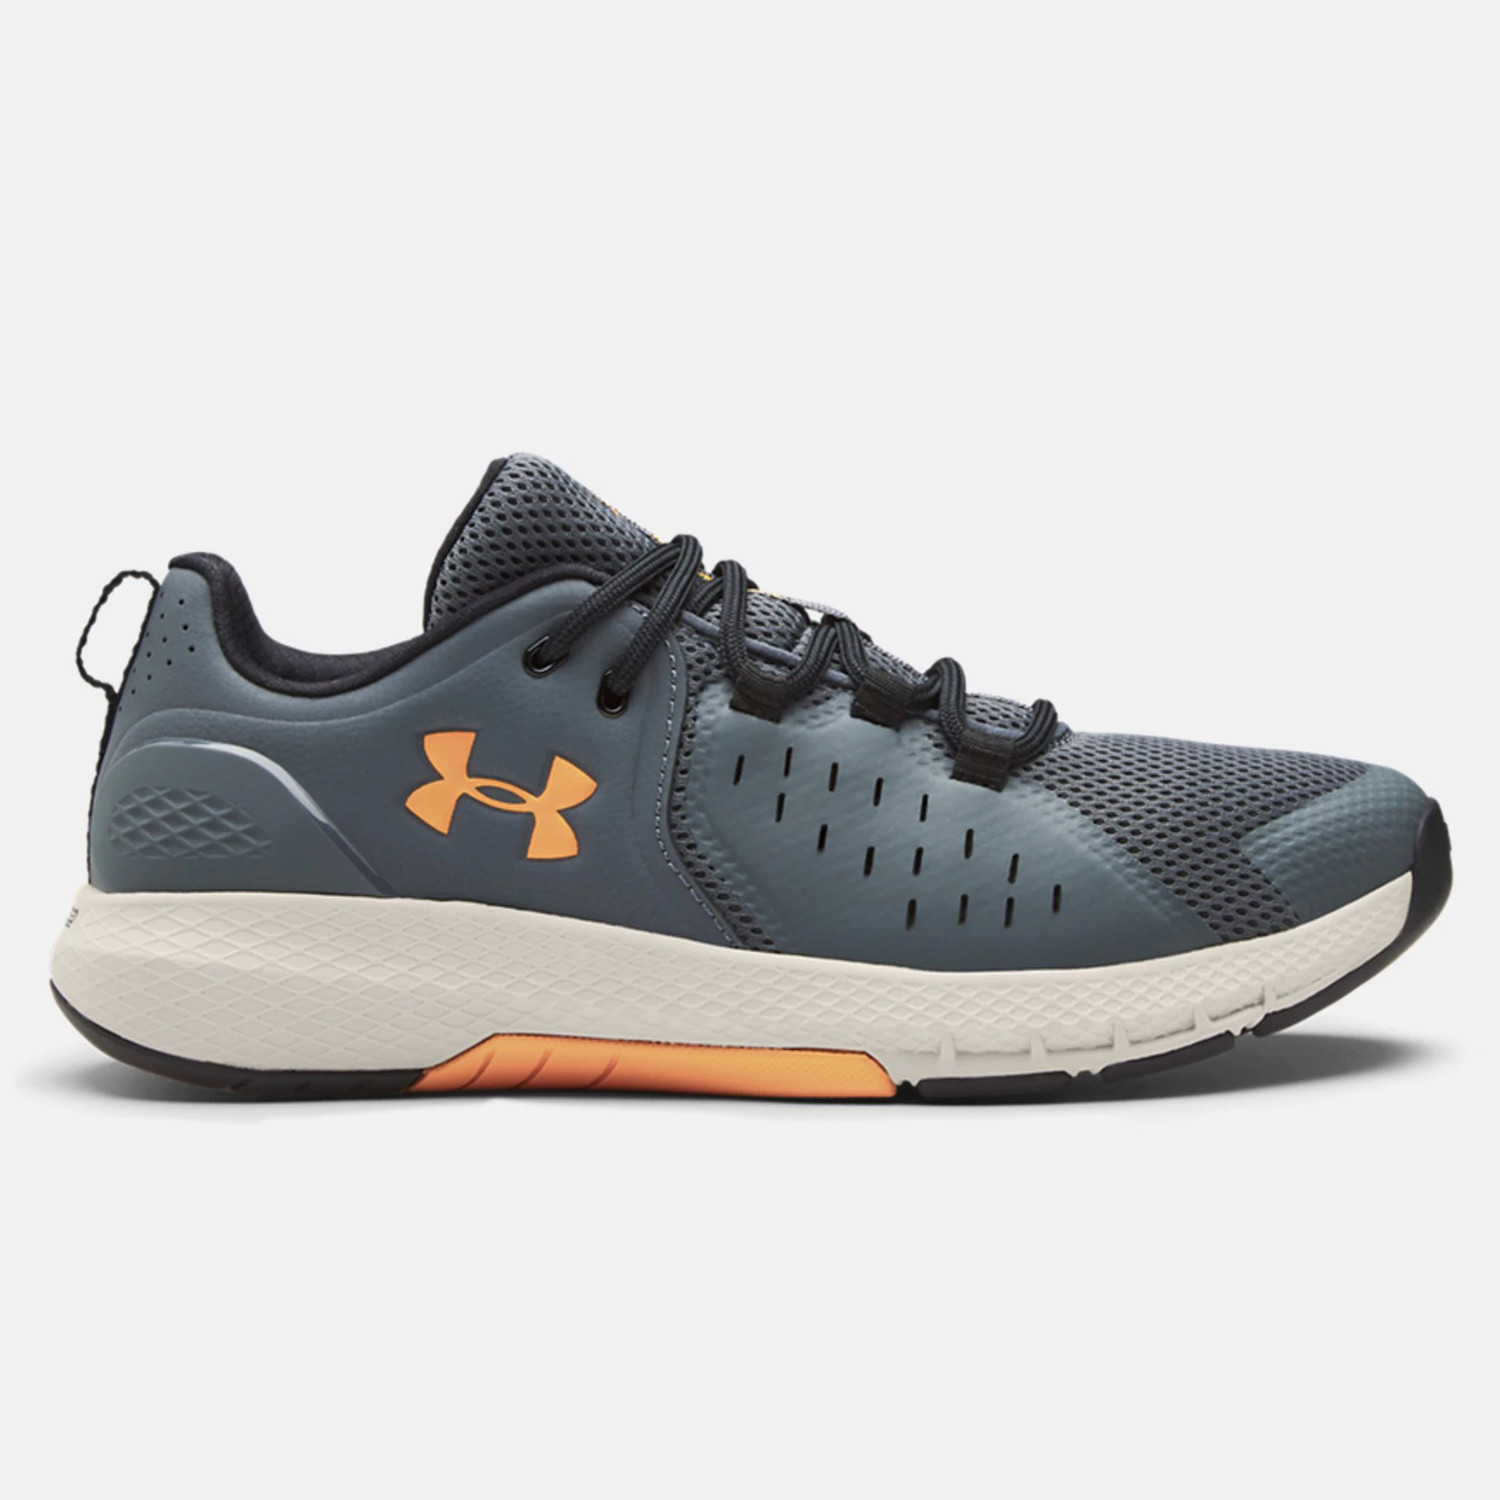 Under Armour Charged Commit 2 Ανδρικά Παπούτσια για Training (9000057434_47186)